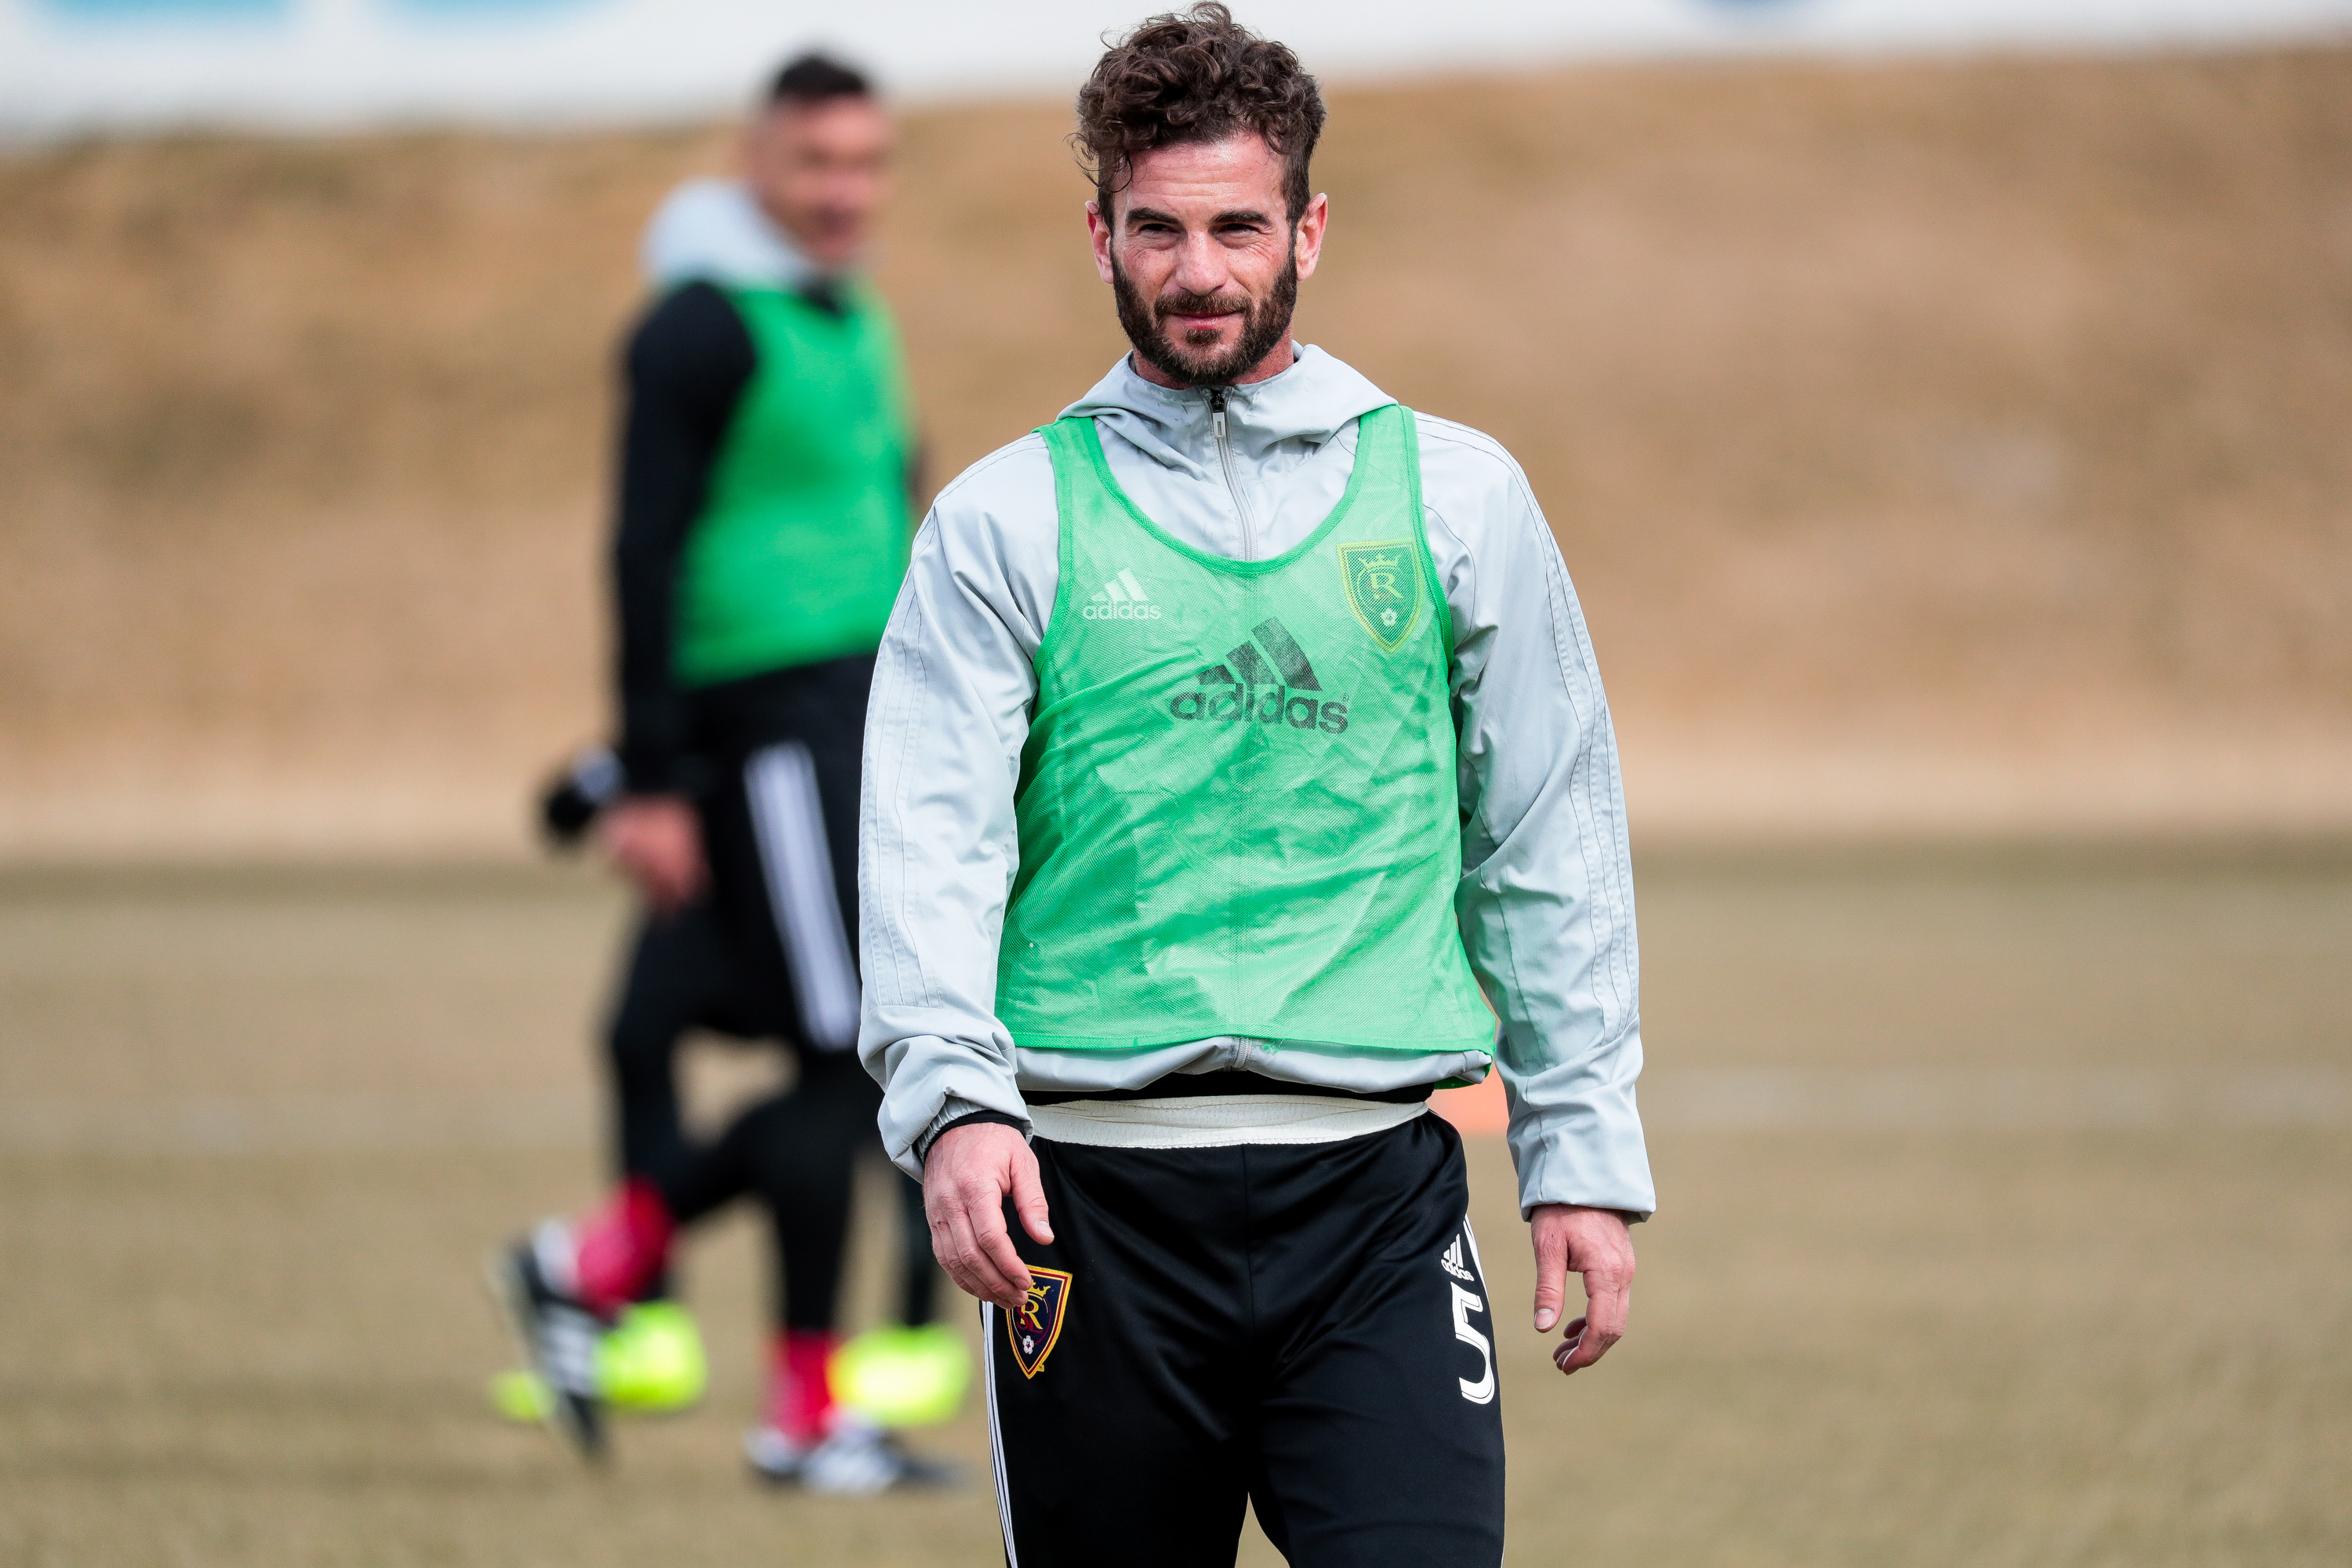 Kyle Beckerman walks the field during a Real Salt Lake practice at America First Field in Sandy on Thursday, Feb. 28, 2019.